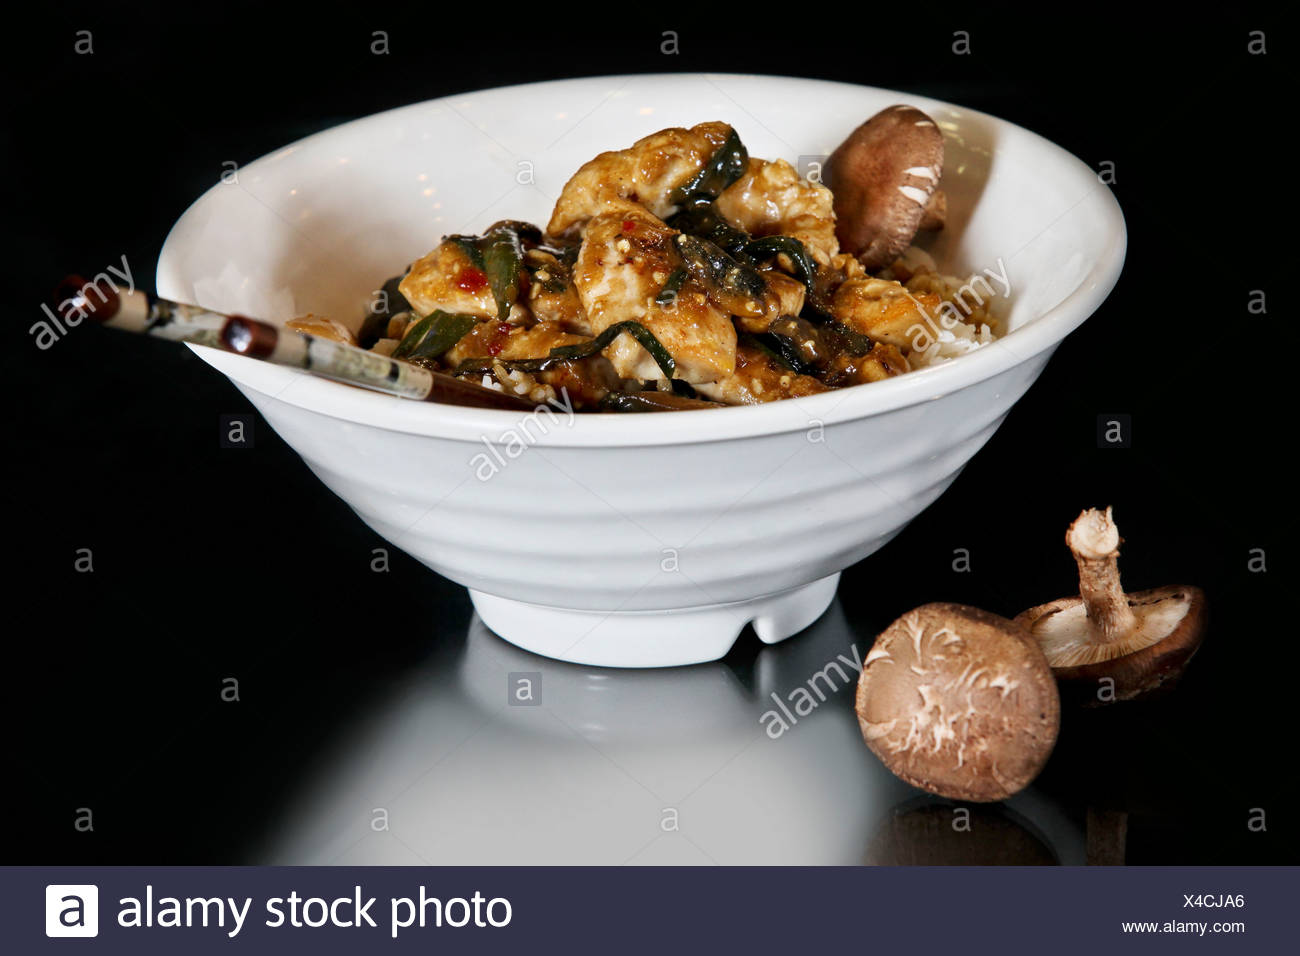 Thai stir fry meal with chicken and mushrooms - Stock Image